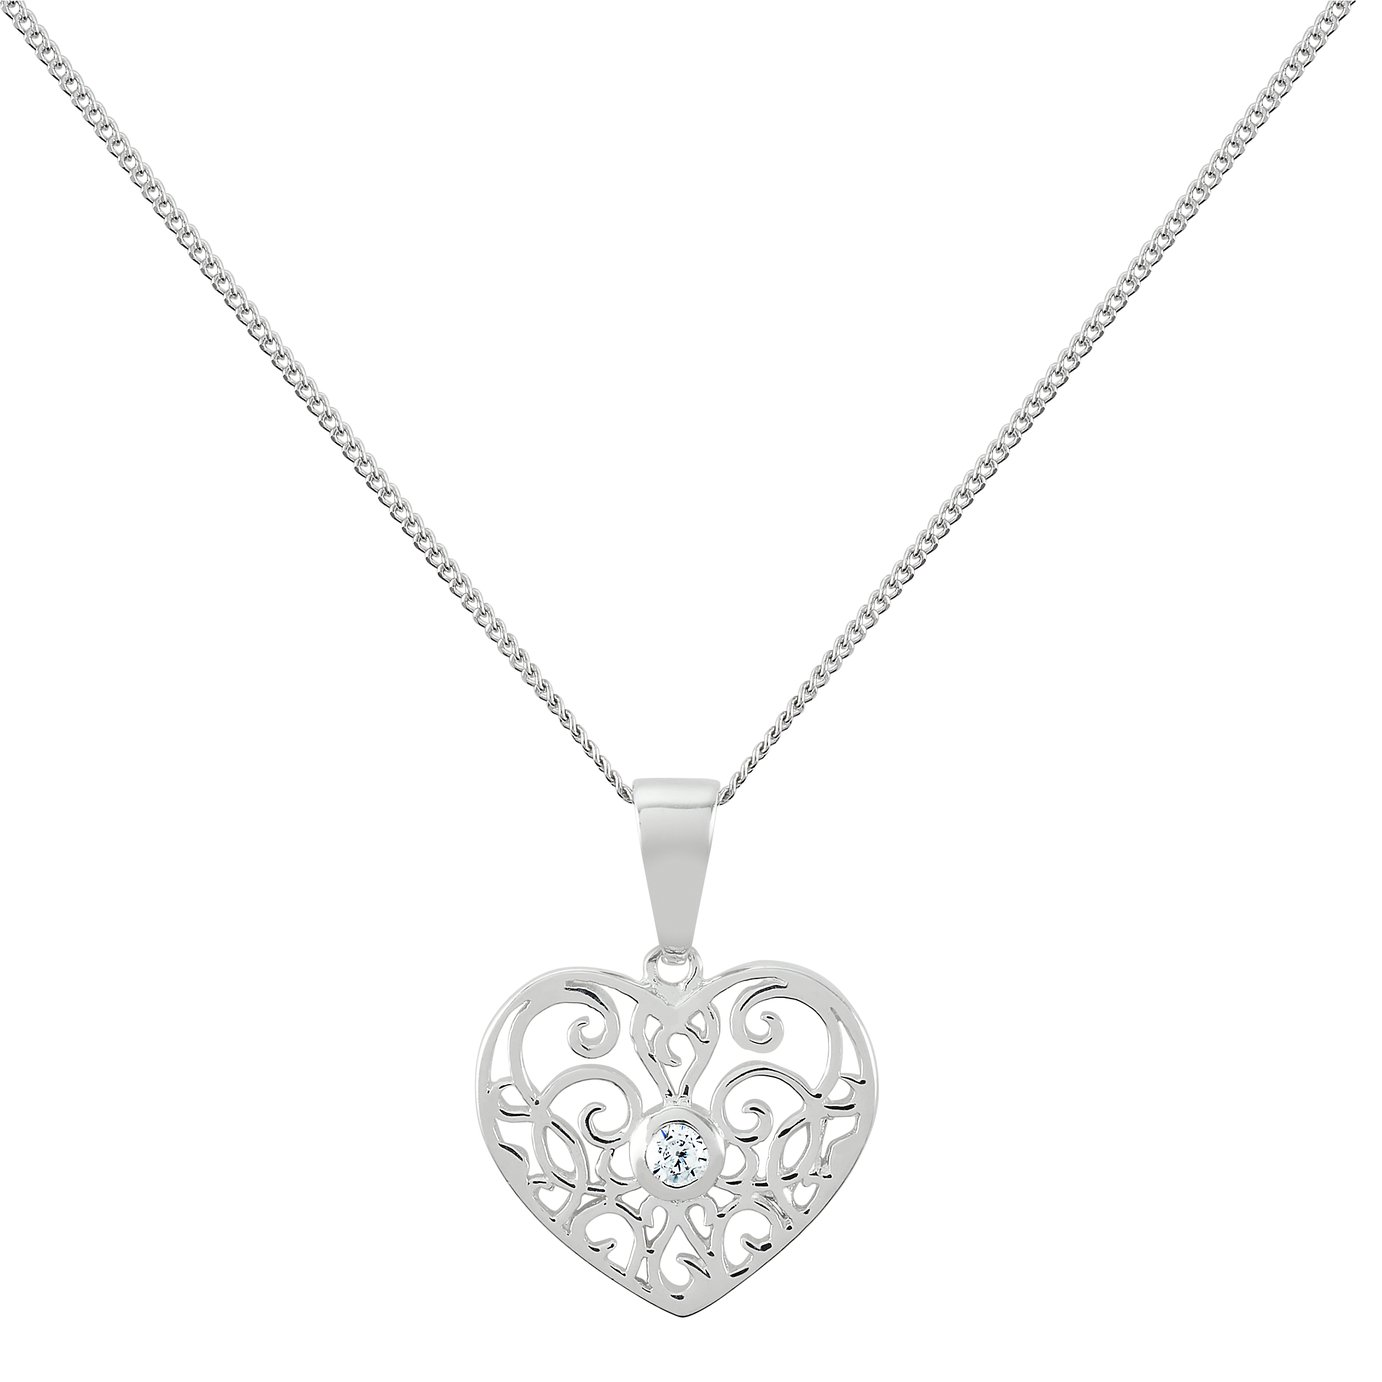 Revere Sterling Silver Filigree Heart Pendant 18in Necklace